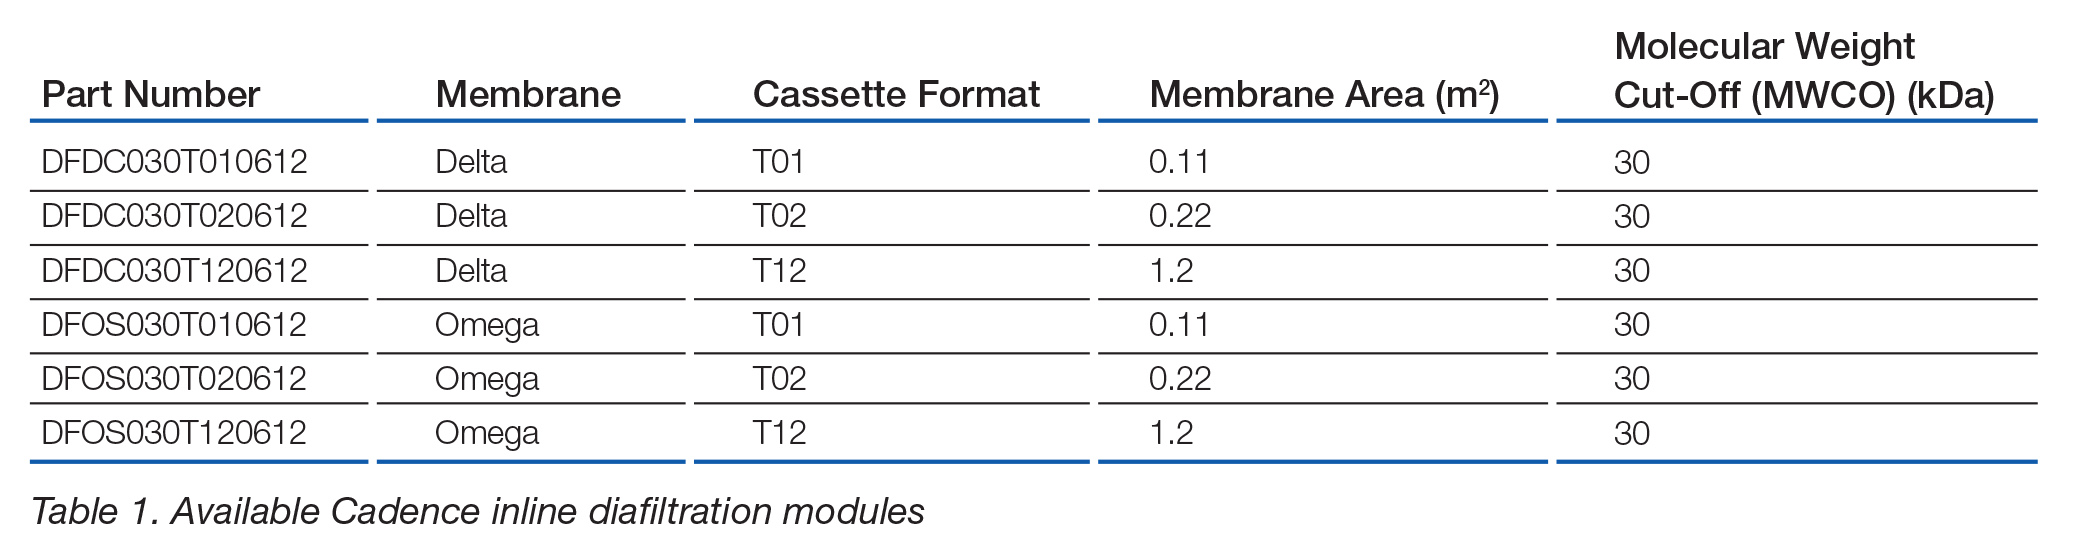 Cleanability And Re Usability Of Cadence Inline